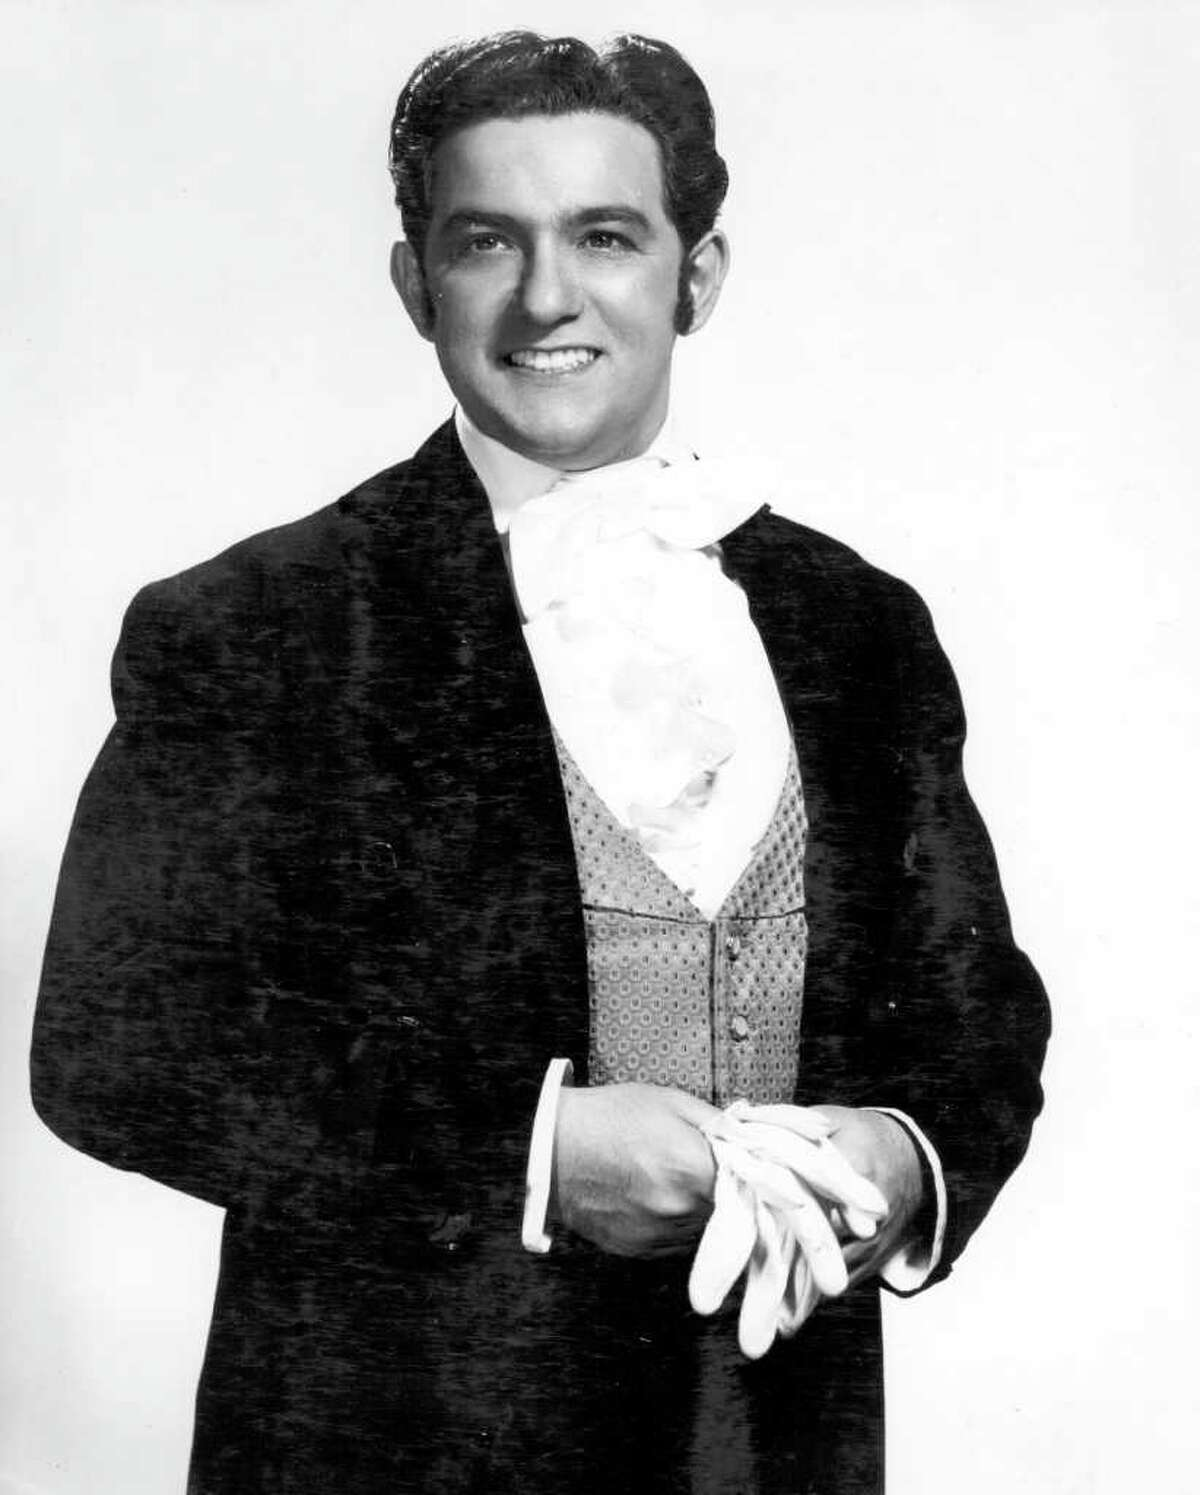 """In this 1957 photo released by The Metropolitan Opera, tenor Charles Anthony is shown in a promotional photo for Verdi's """"La Traviata."""" Anthony, who holds the record for most appearances at the Metropolitan Opera during a career that spanned from 1954-2010, died Wednesday, Feb. 15, 2012 in Florida. He was 82. (AP Photo/The Metropolitan Opera)"""